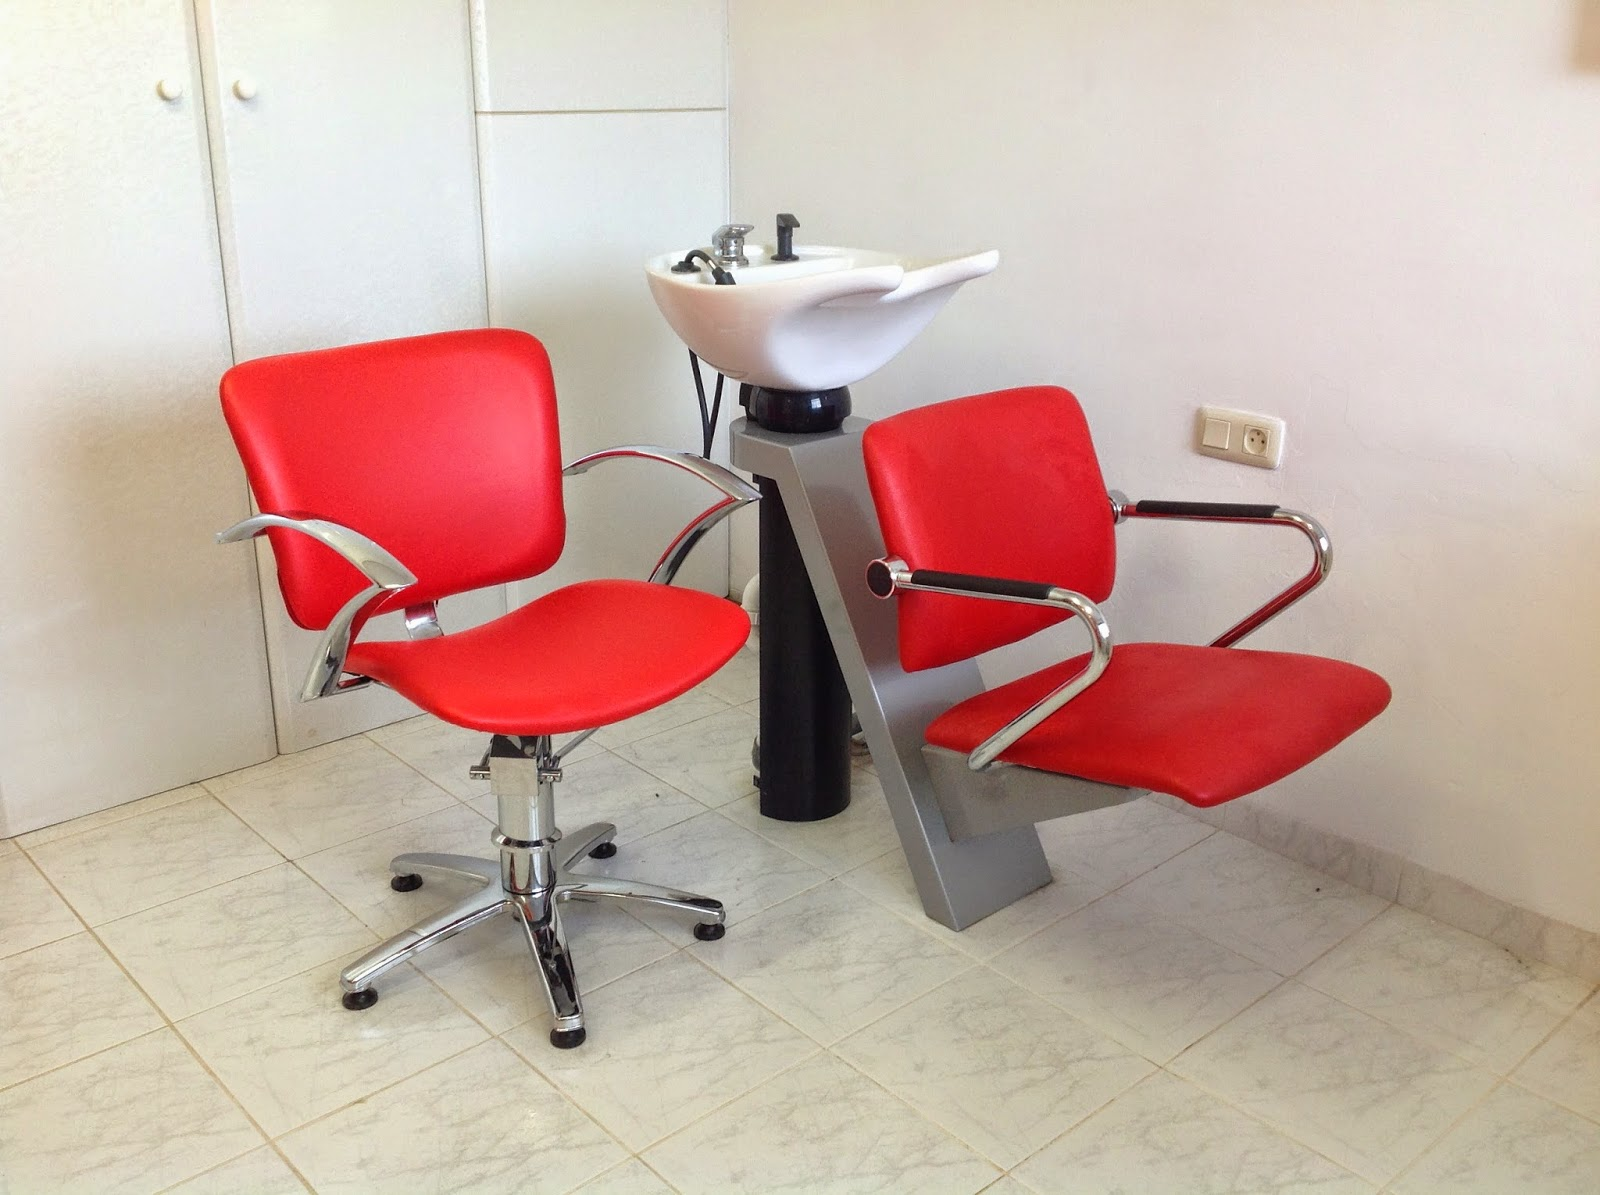 Digame for sale hair salon items for Salon basins for sale